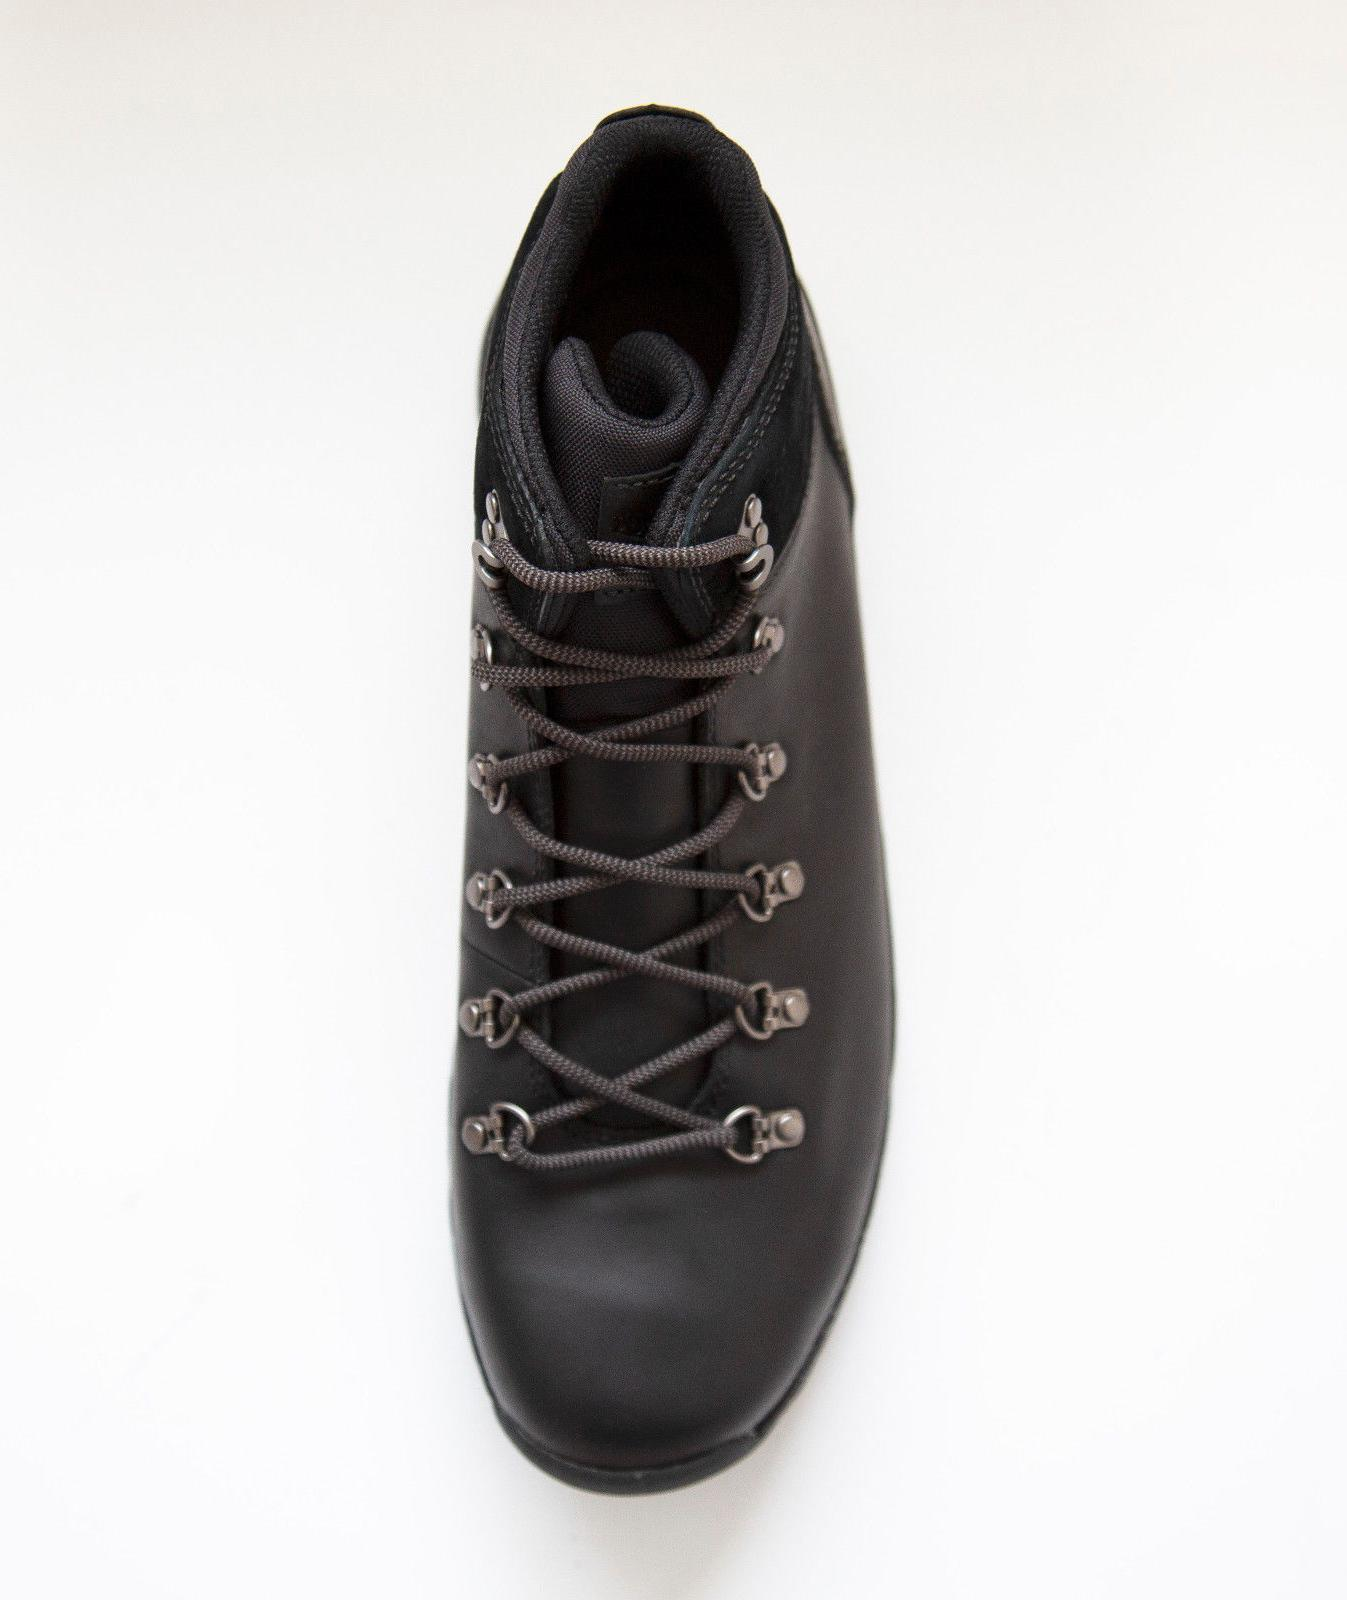 Danner Mountain 503 Men's Hiking Boots Size